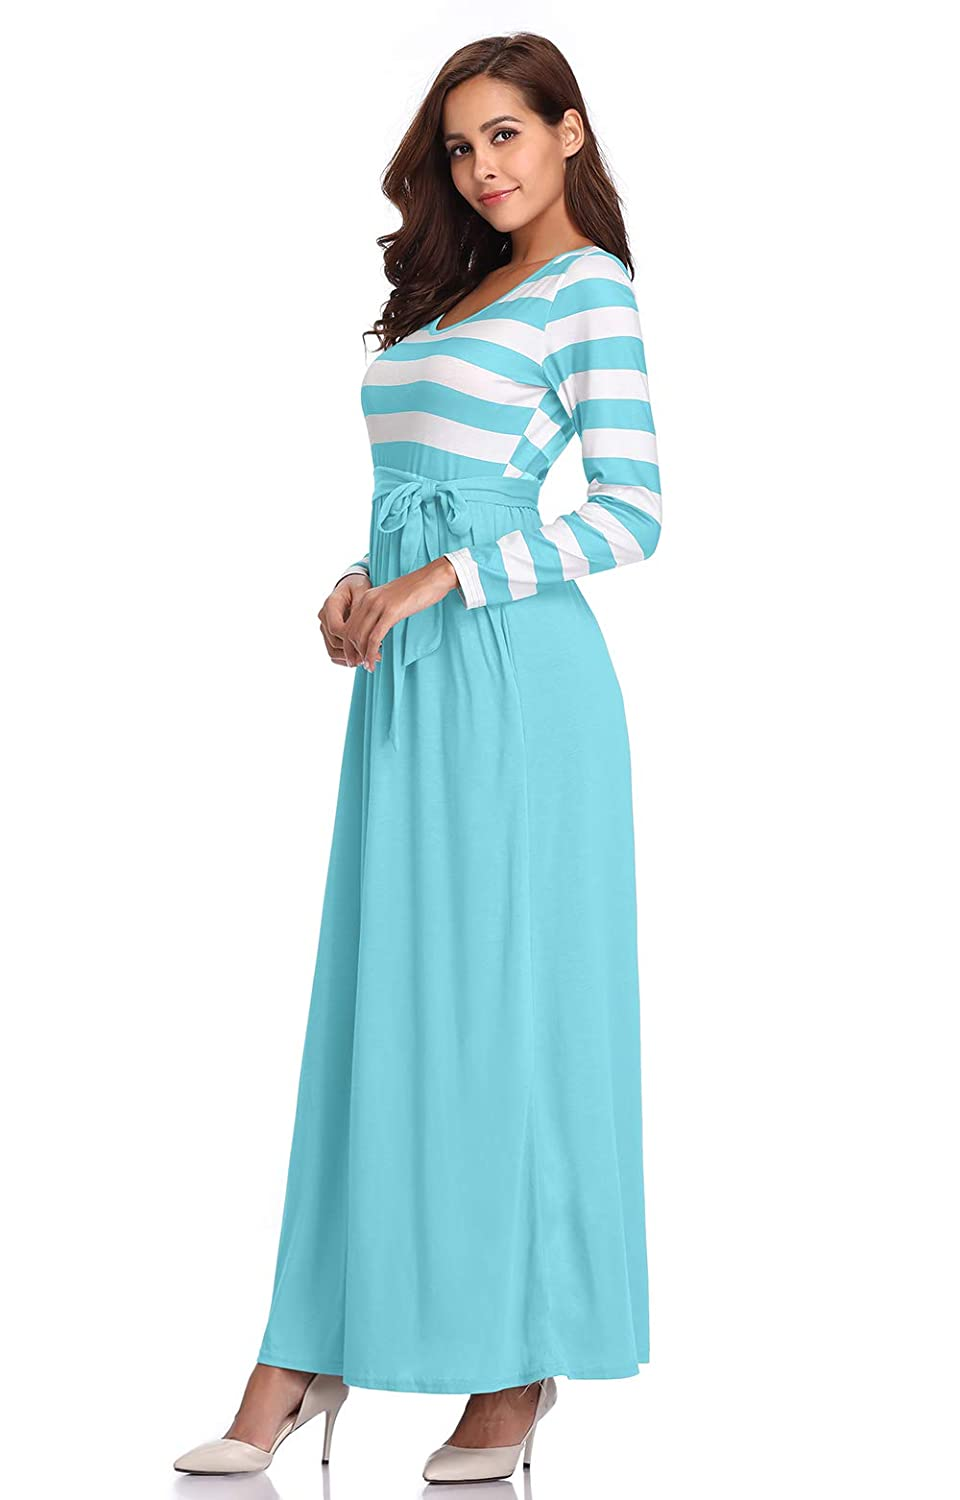 97d0bf7a580 MYSHOW Women s Long Sleeve Striped Patchwork Casual Tie Waist Maxi Dress  with Pockets at Amazon Women s Clothing store